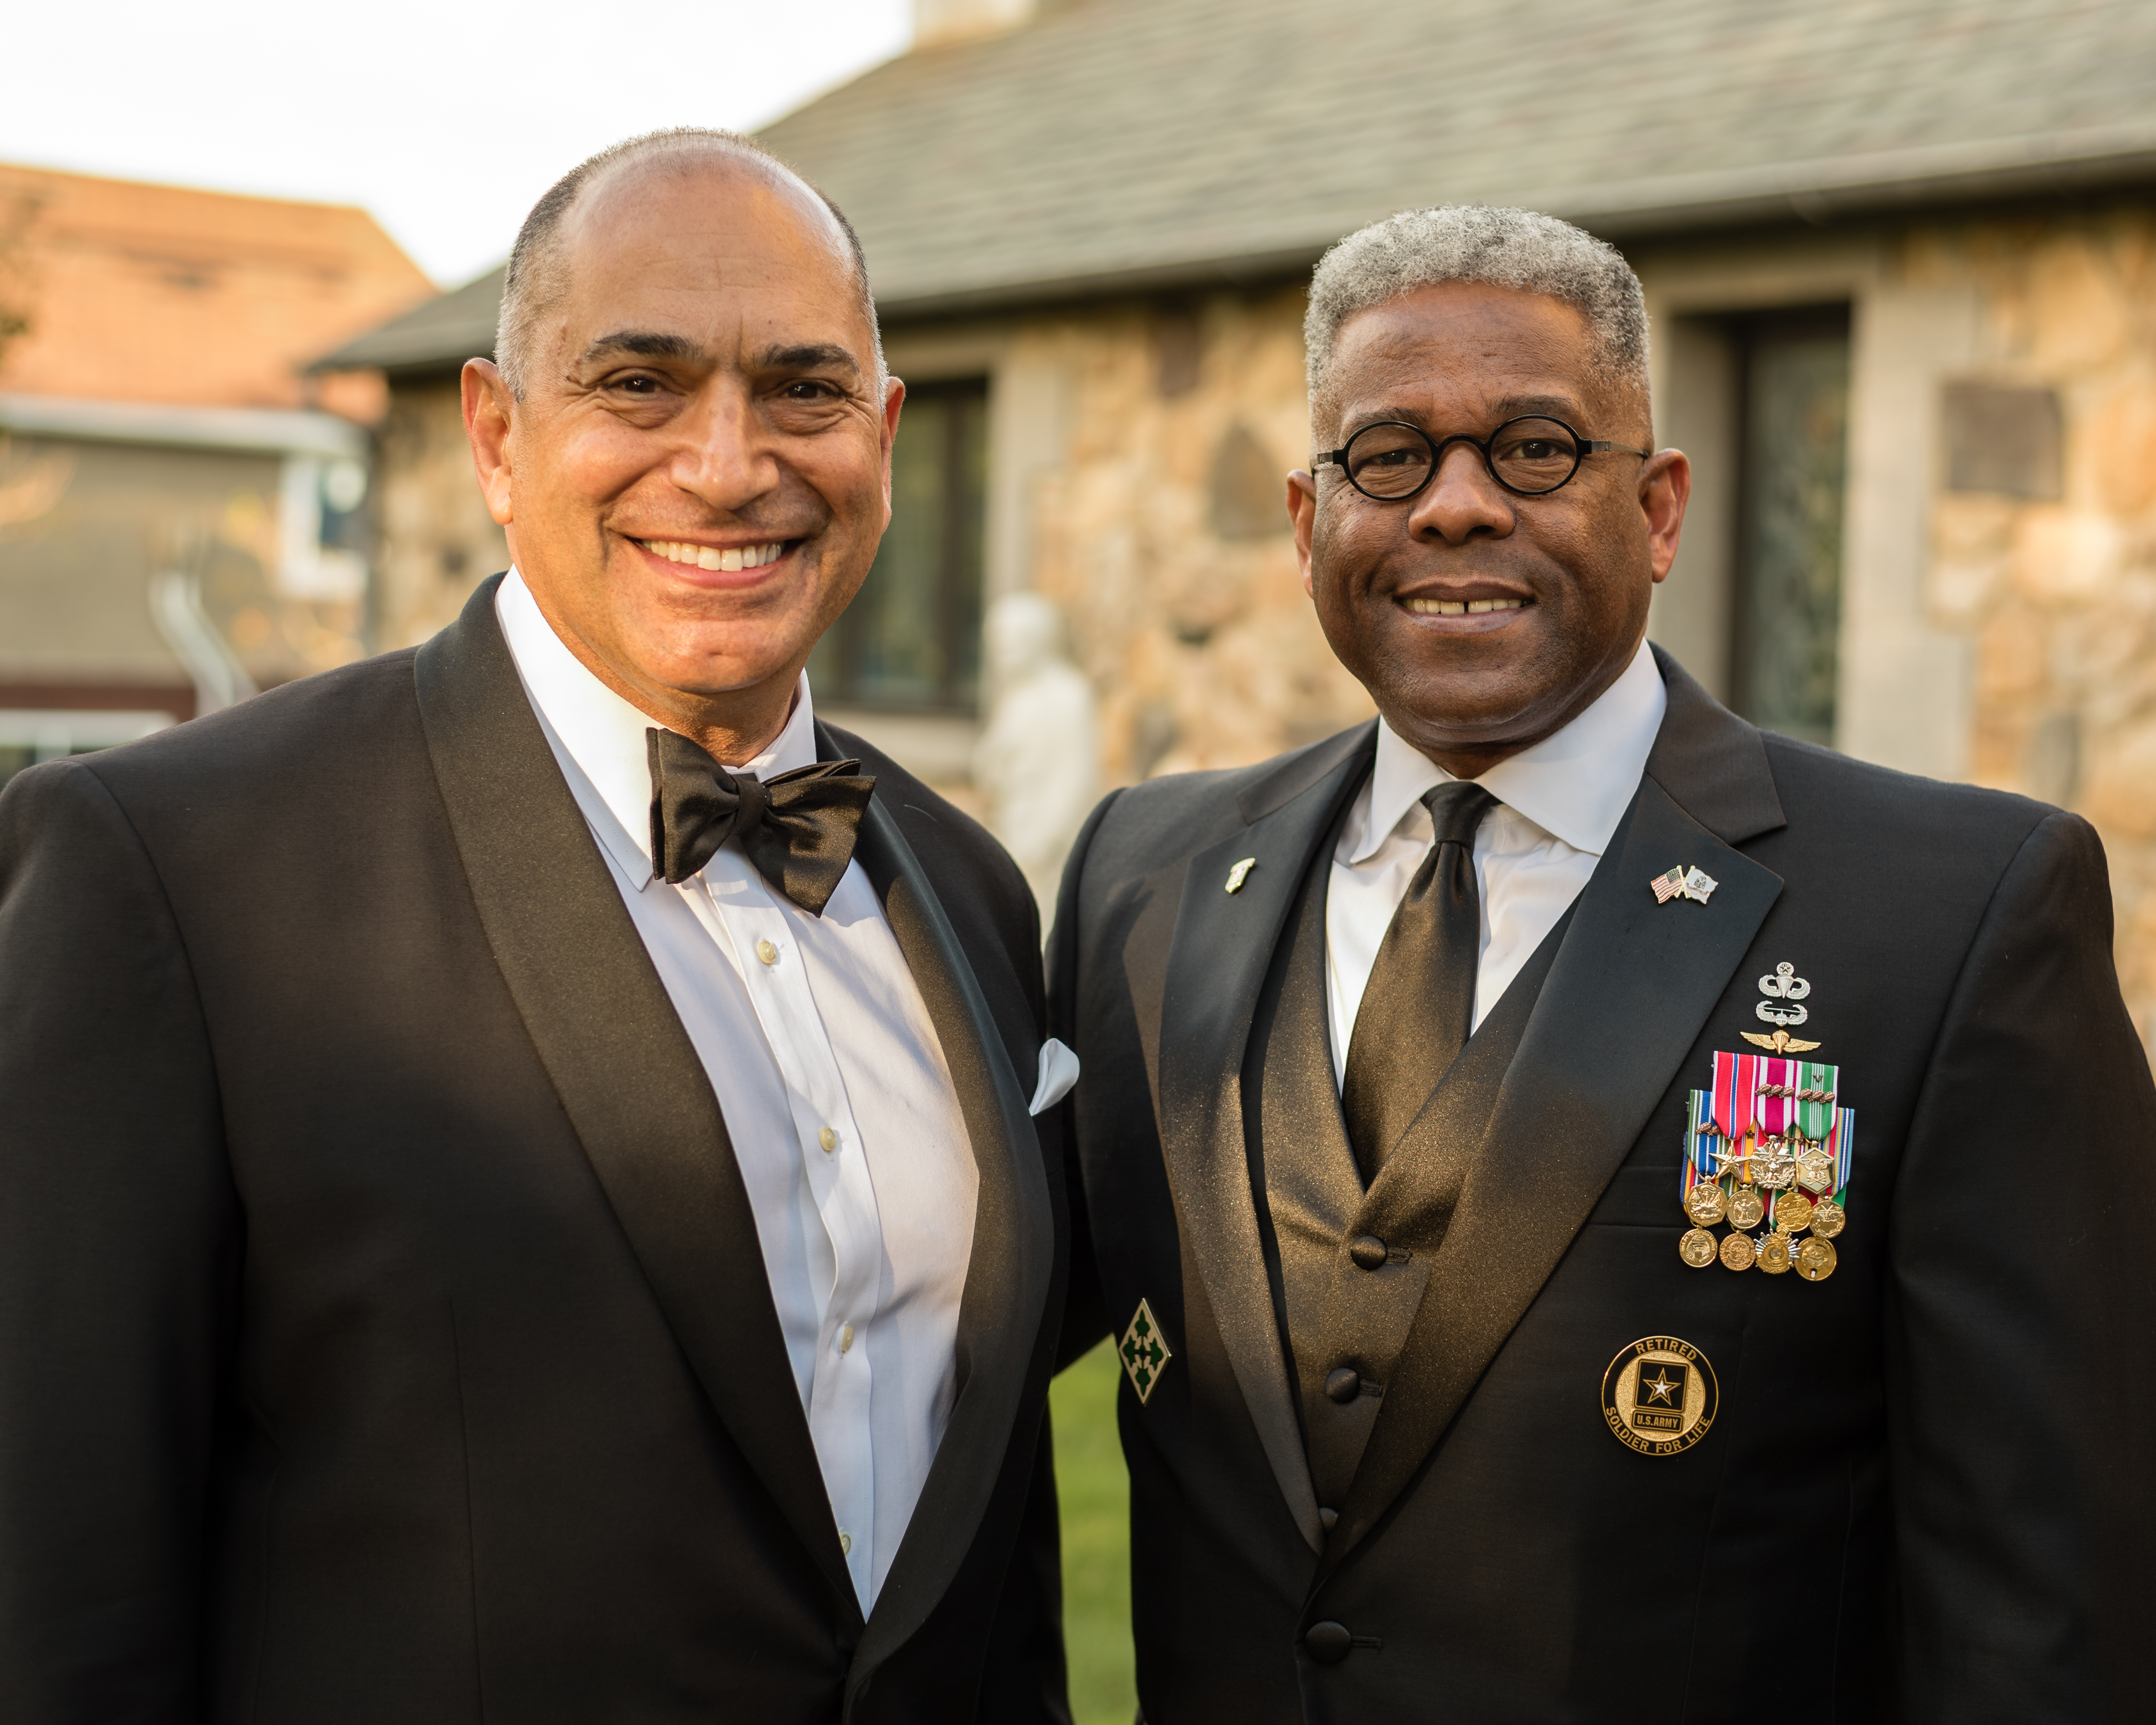 14th Annual Medal of Honor Dinner